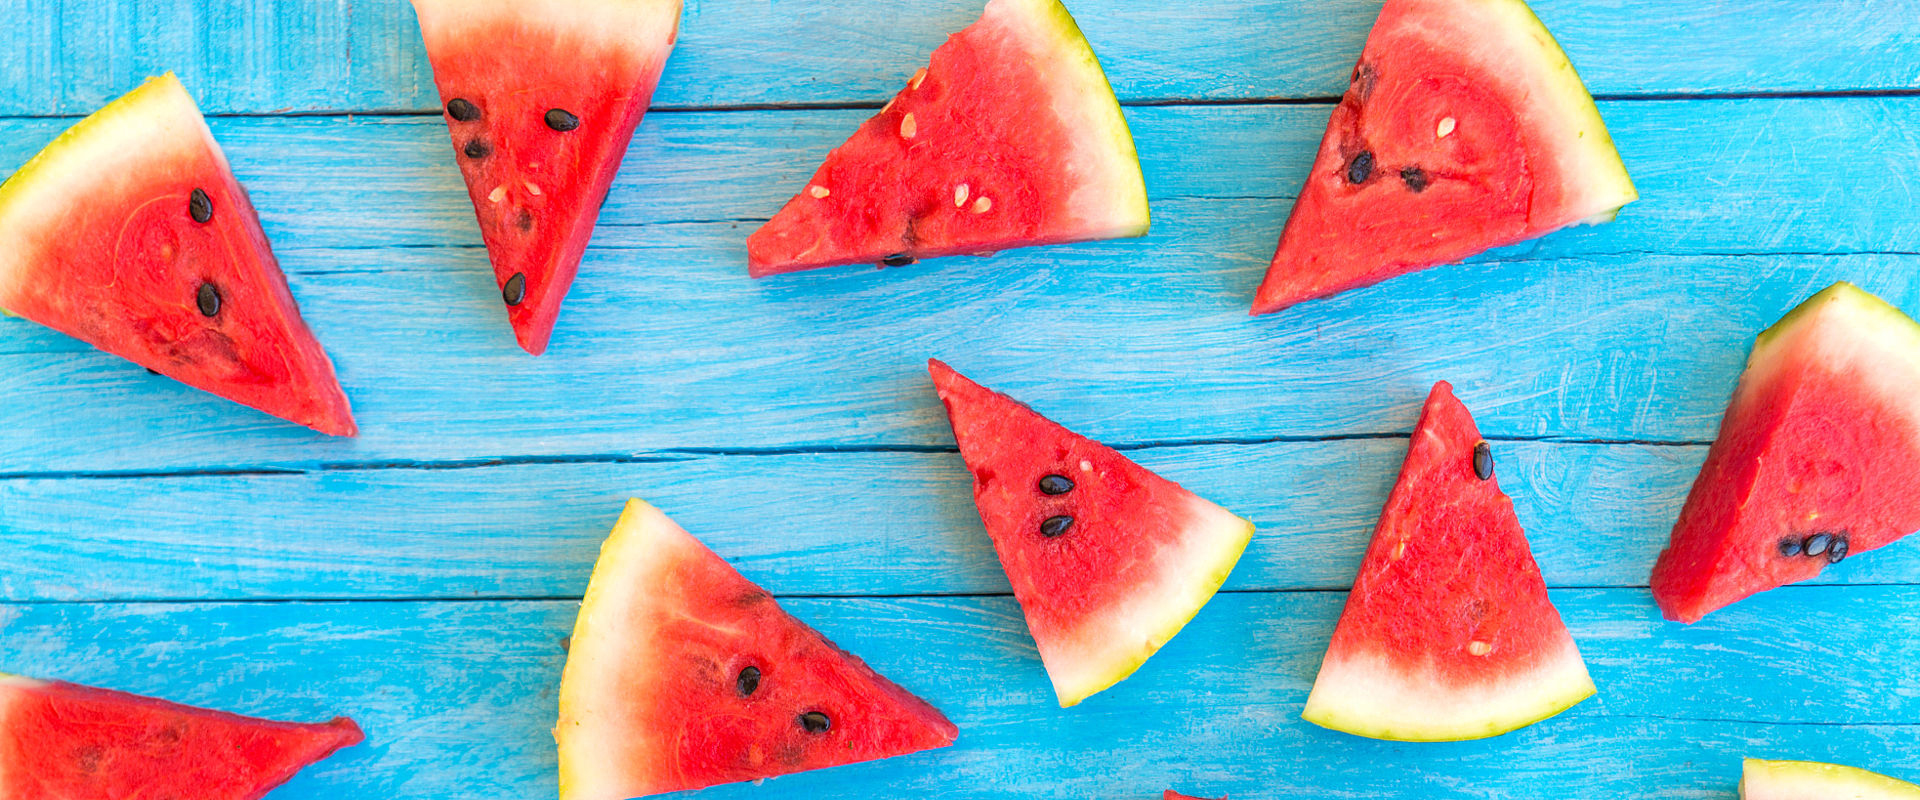 watermelon background  blue  wooden  table background